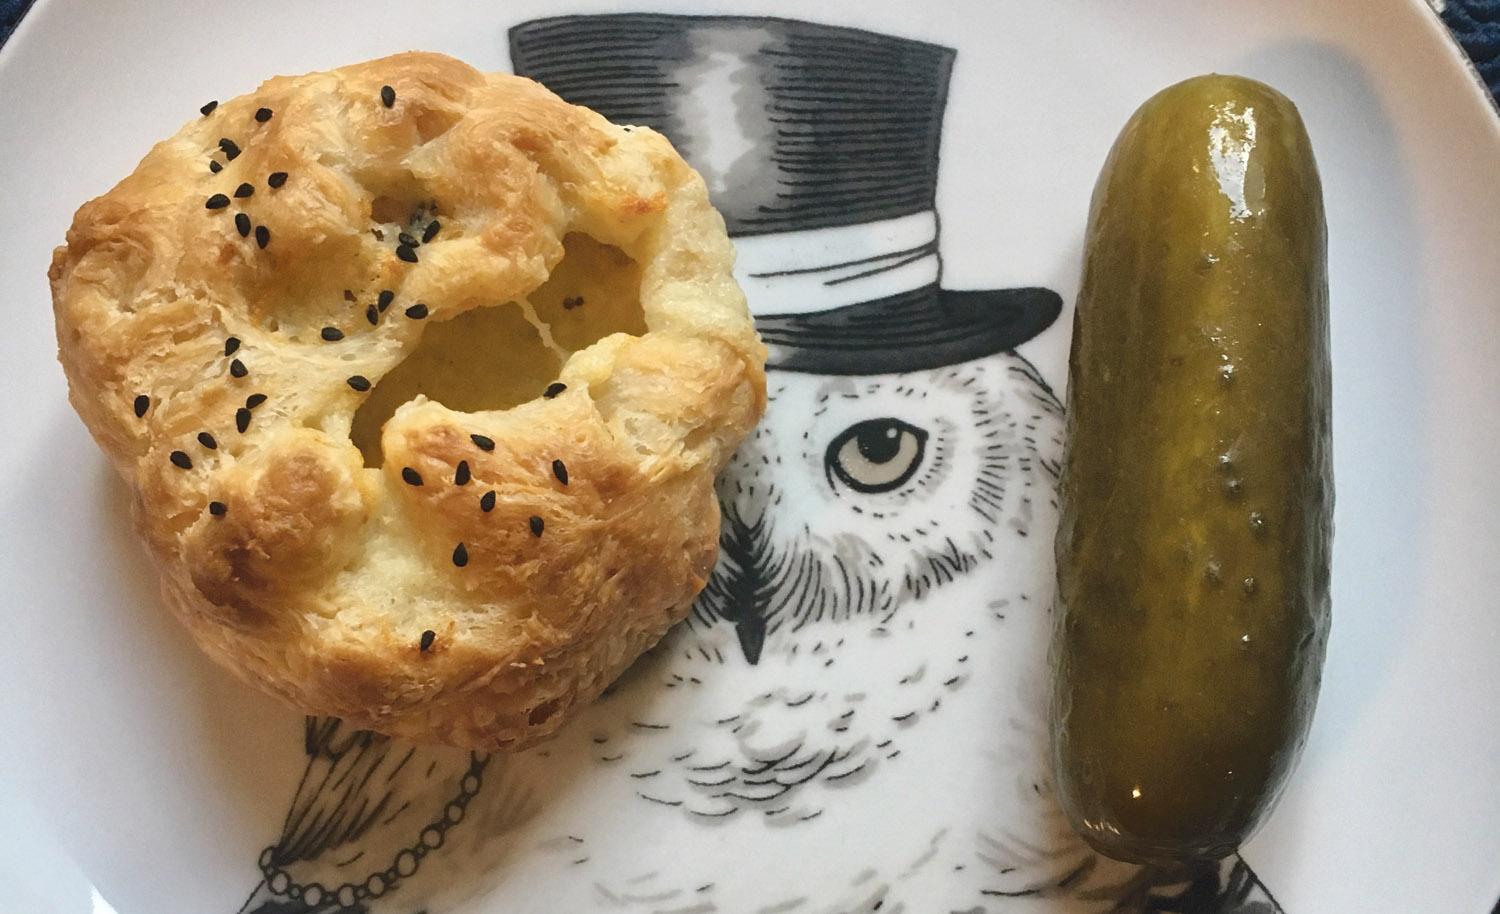 a small pastry sits next to a pickle on a plate with an image of an owl in a top hat on it